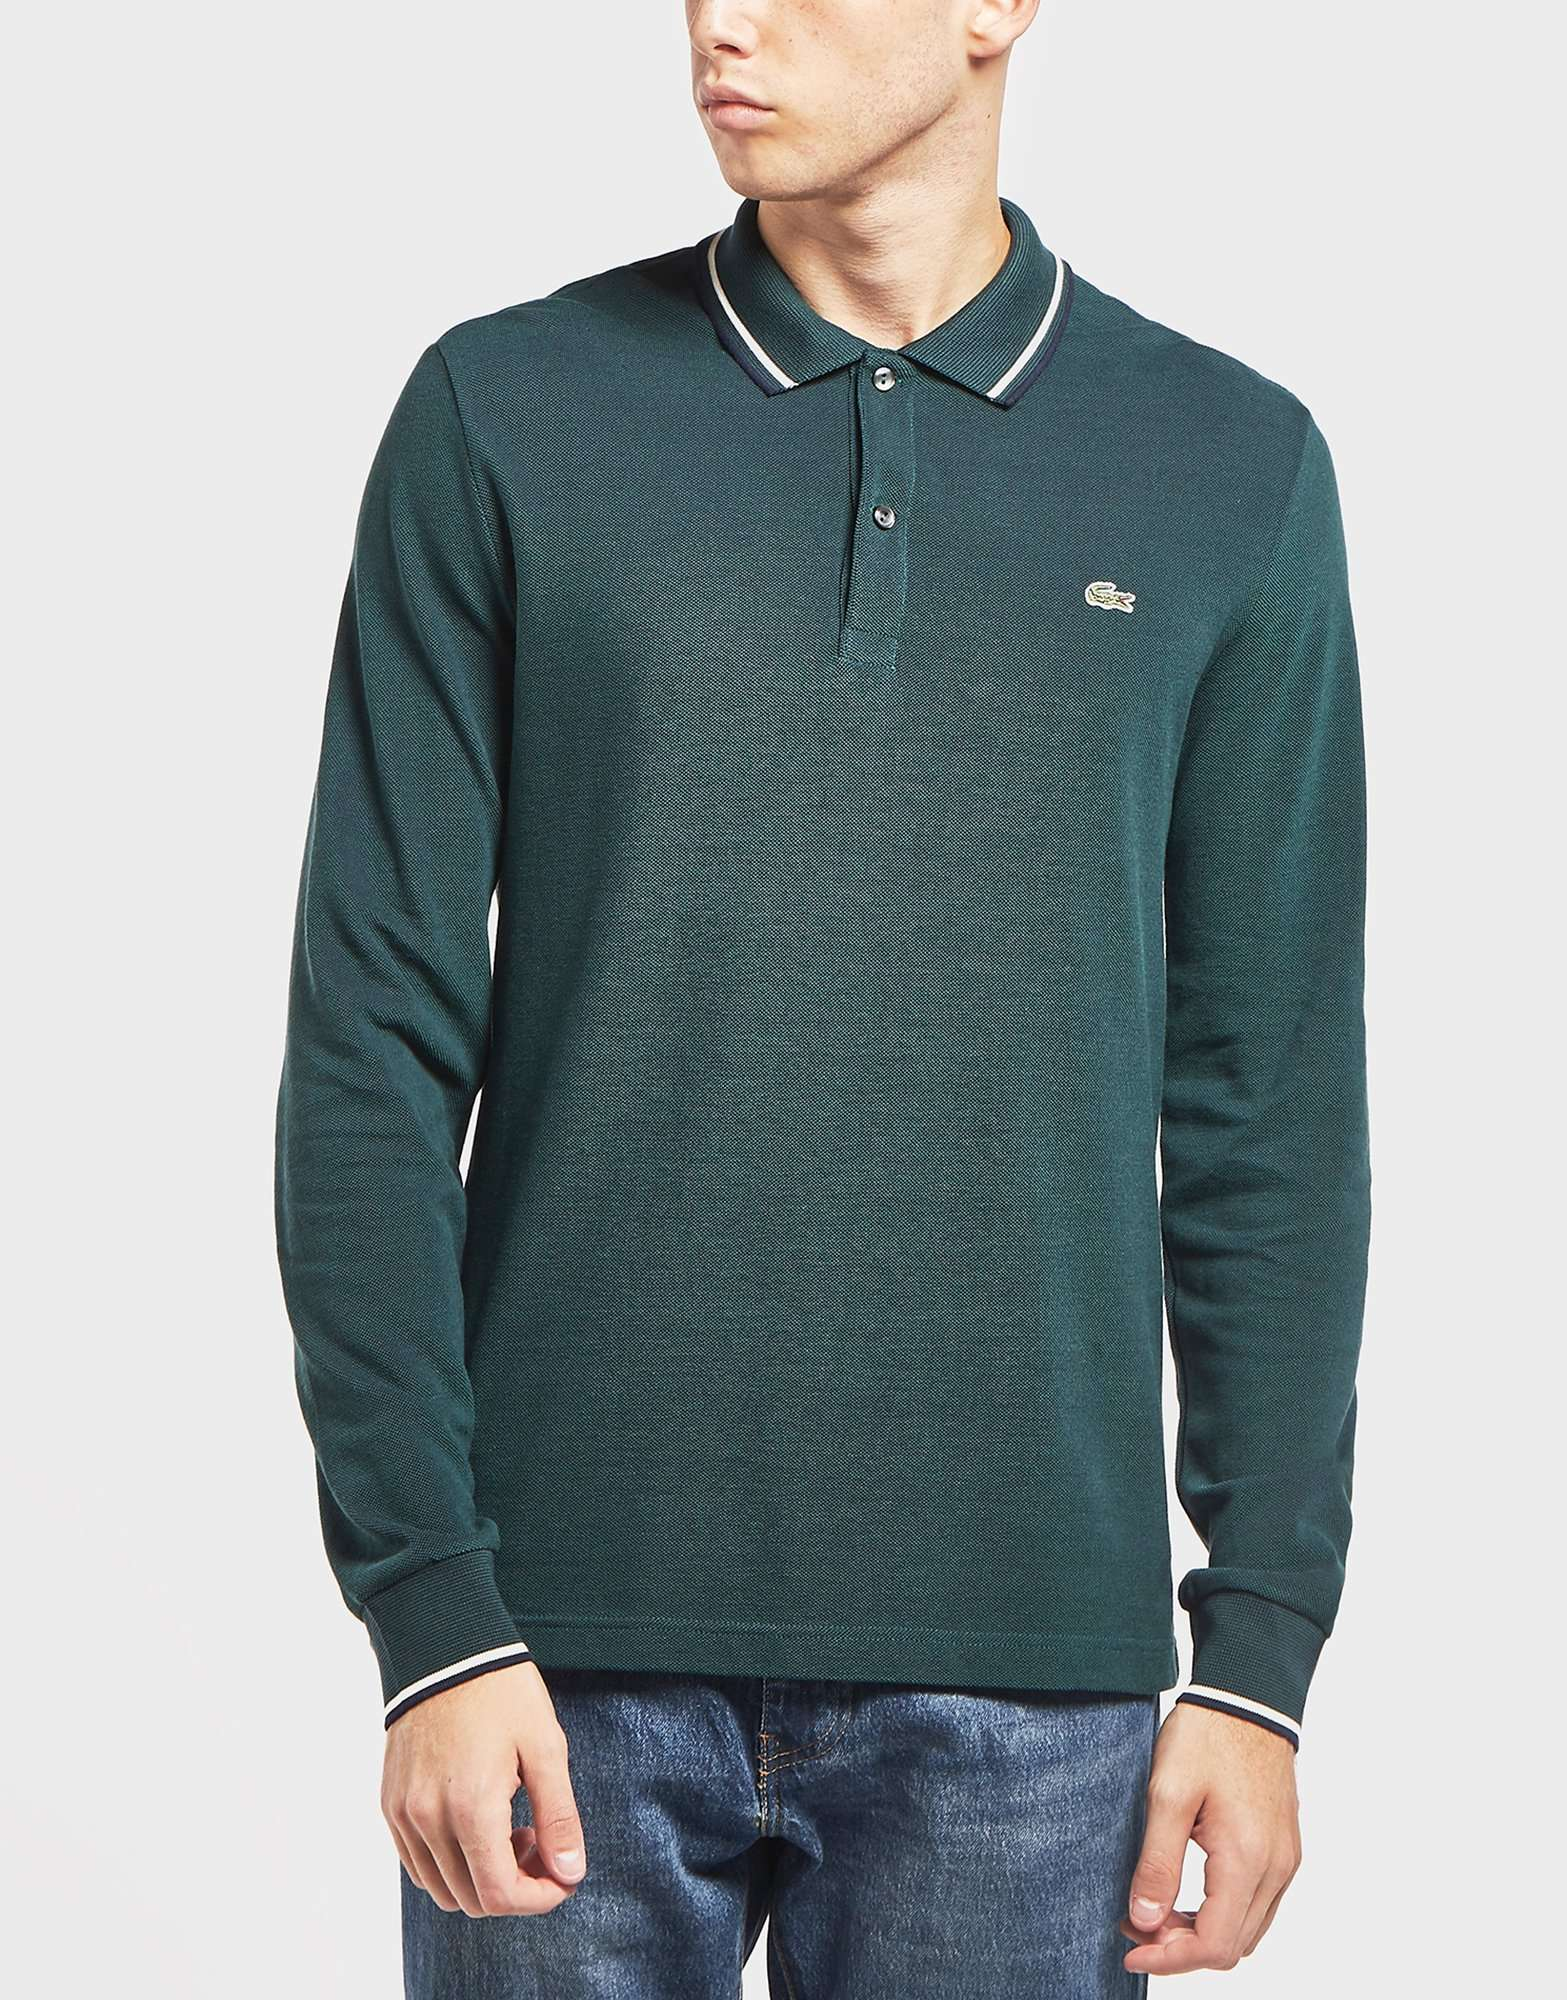 Lacoste Beye Tipped Long Sleeve Polo Shirt